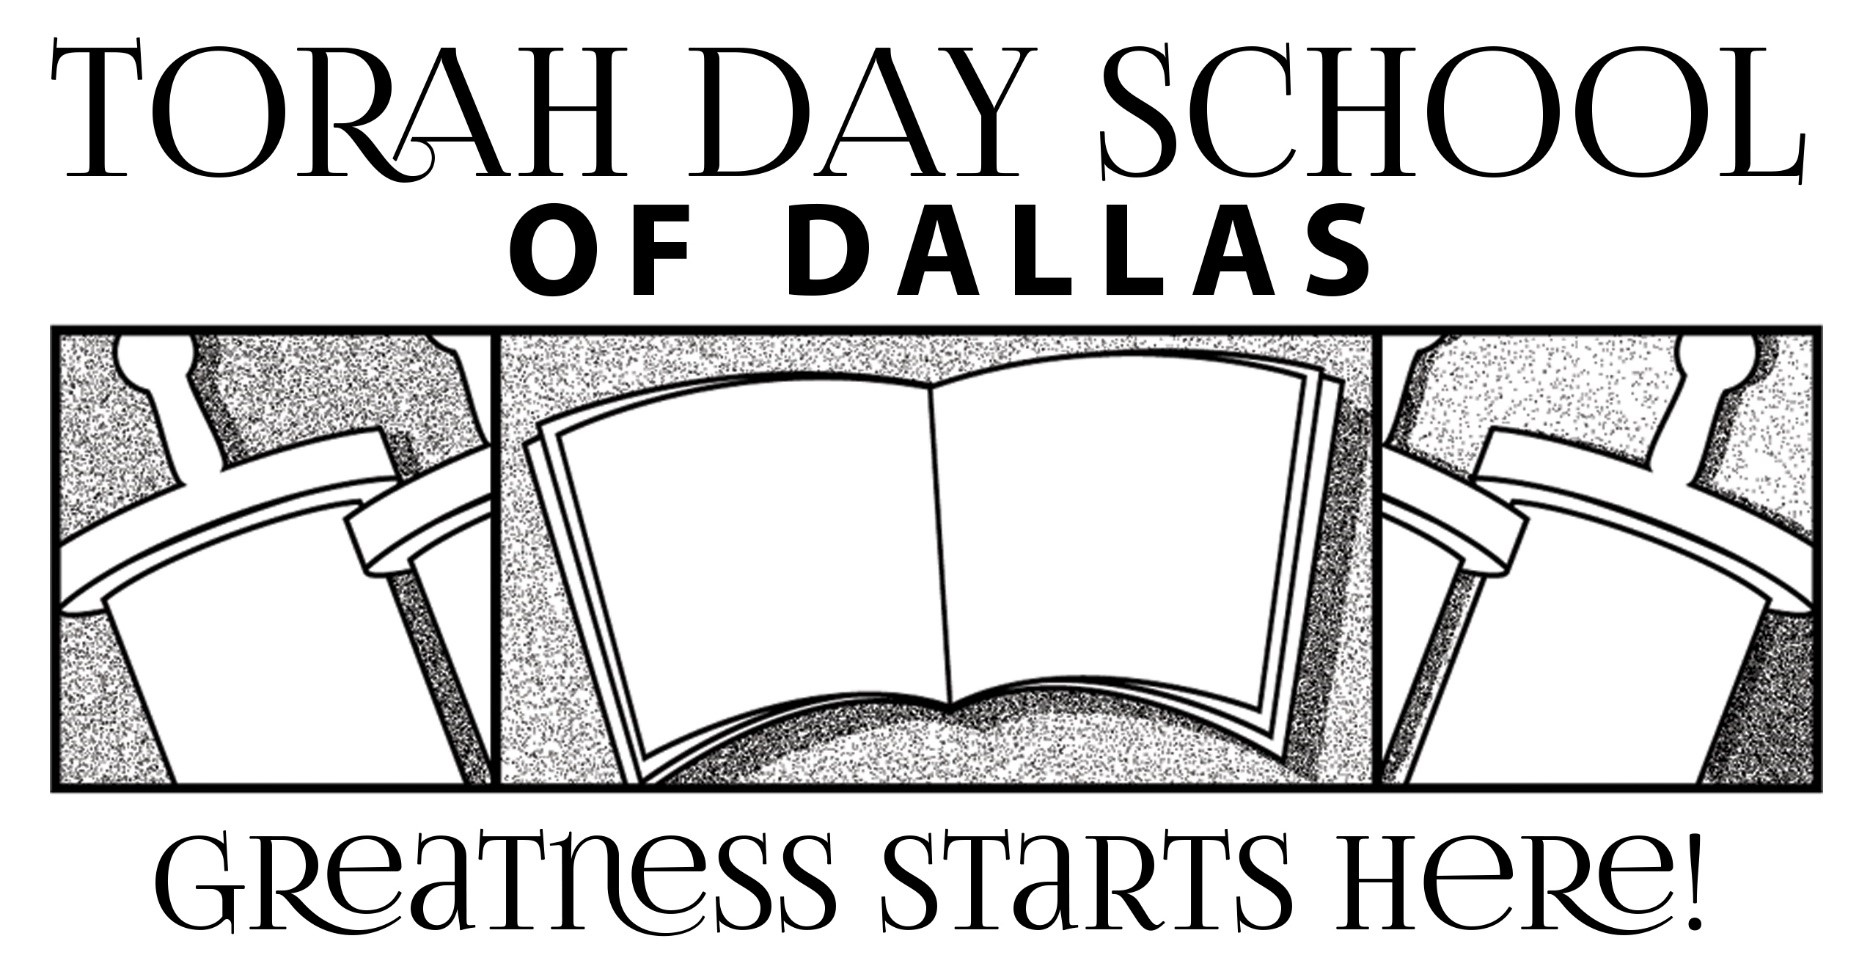 Torah Day School of Dallas | Orthodox Jewish Day School